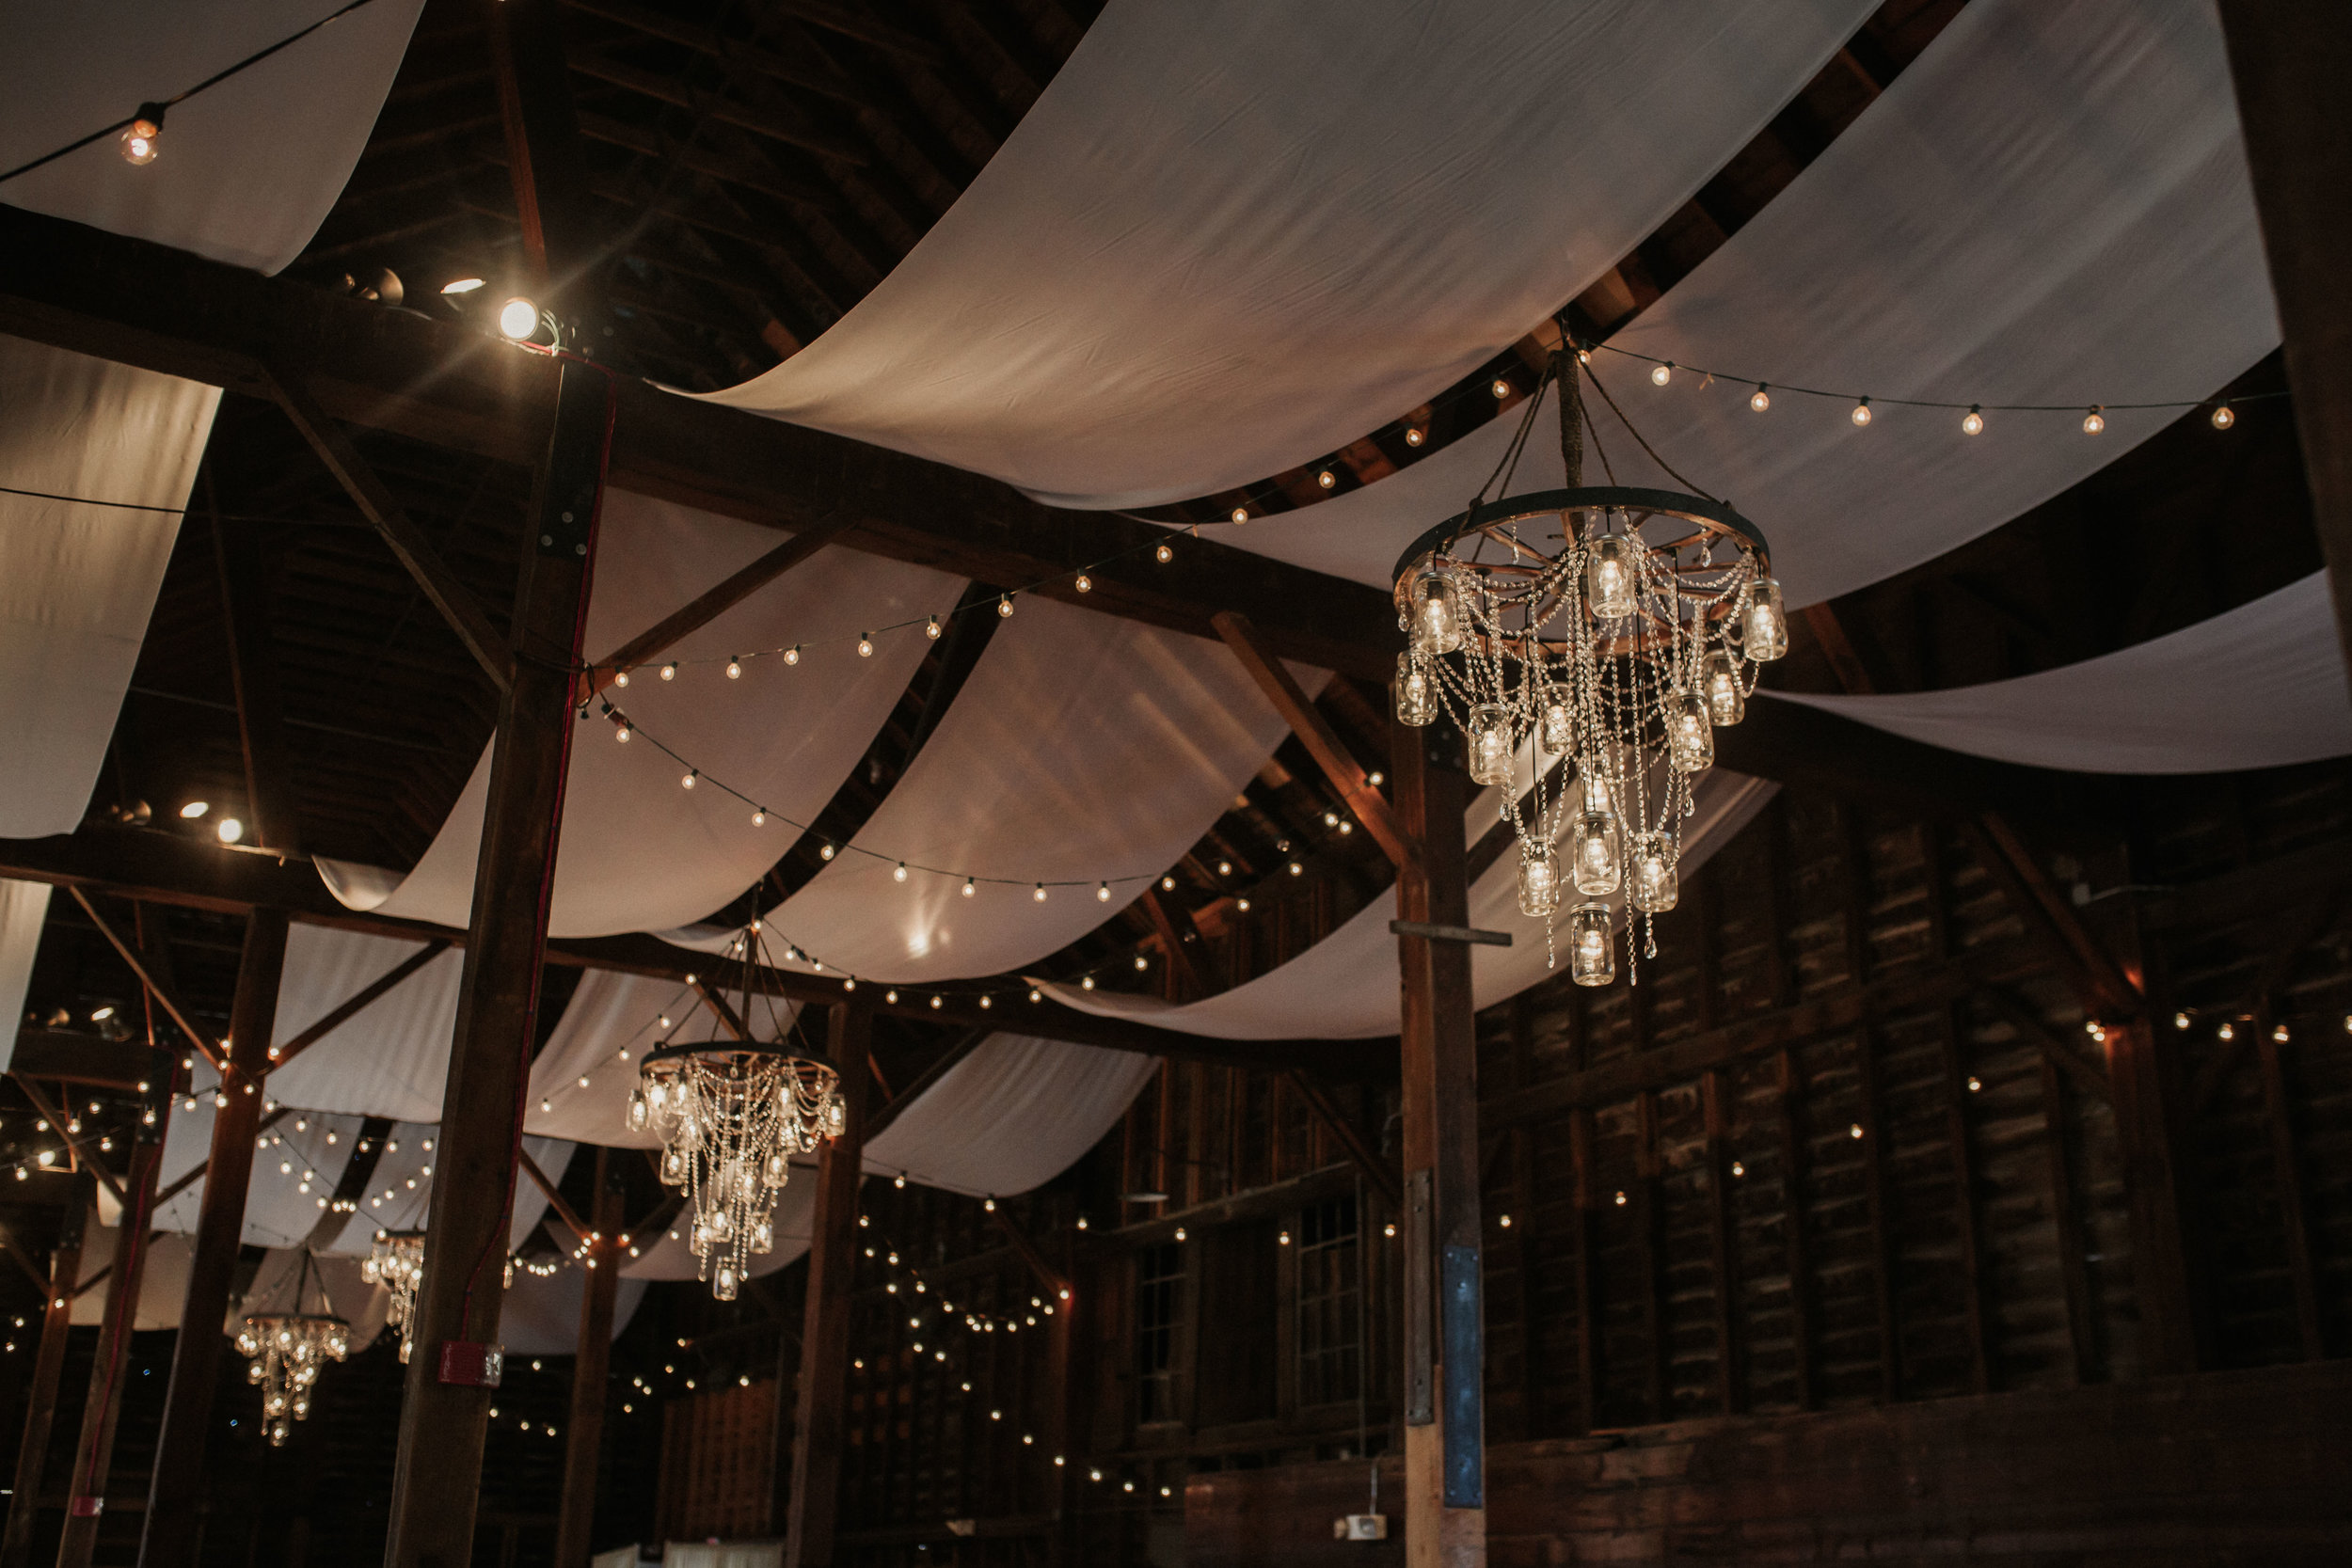 shaker_heritage_barn_decor_002.JPG